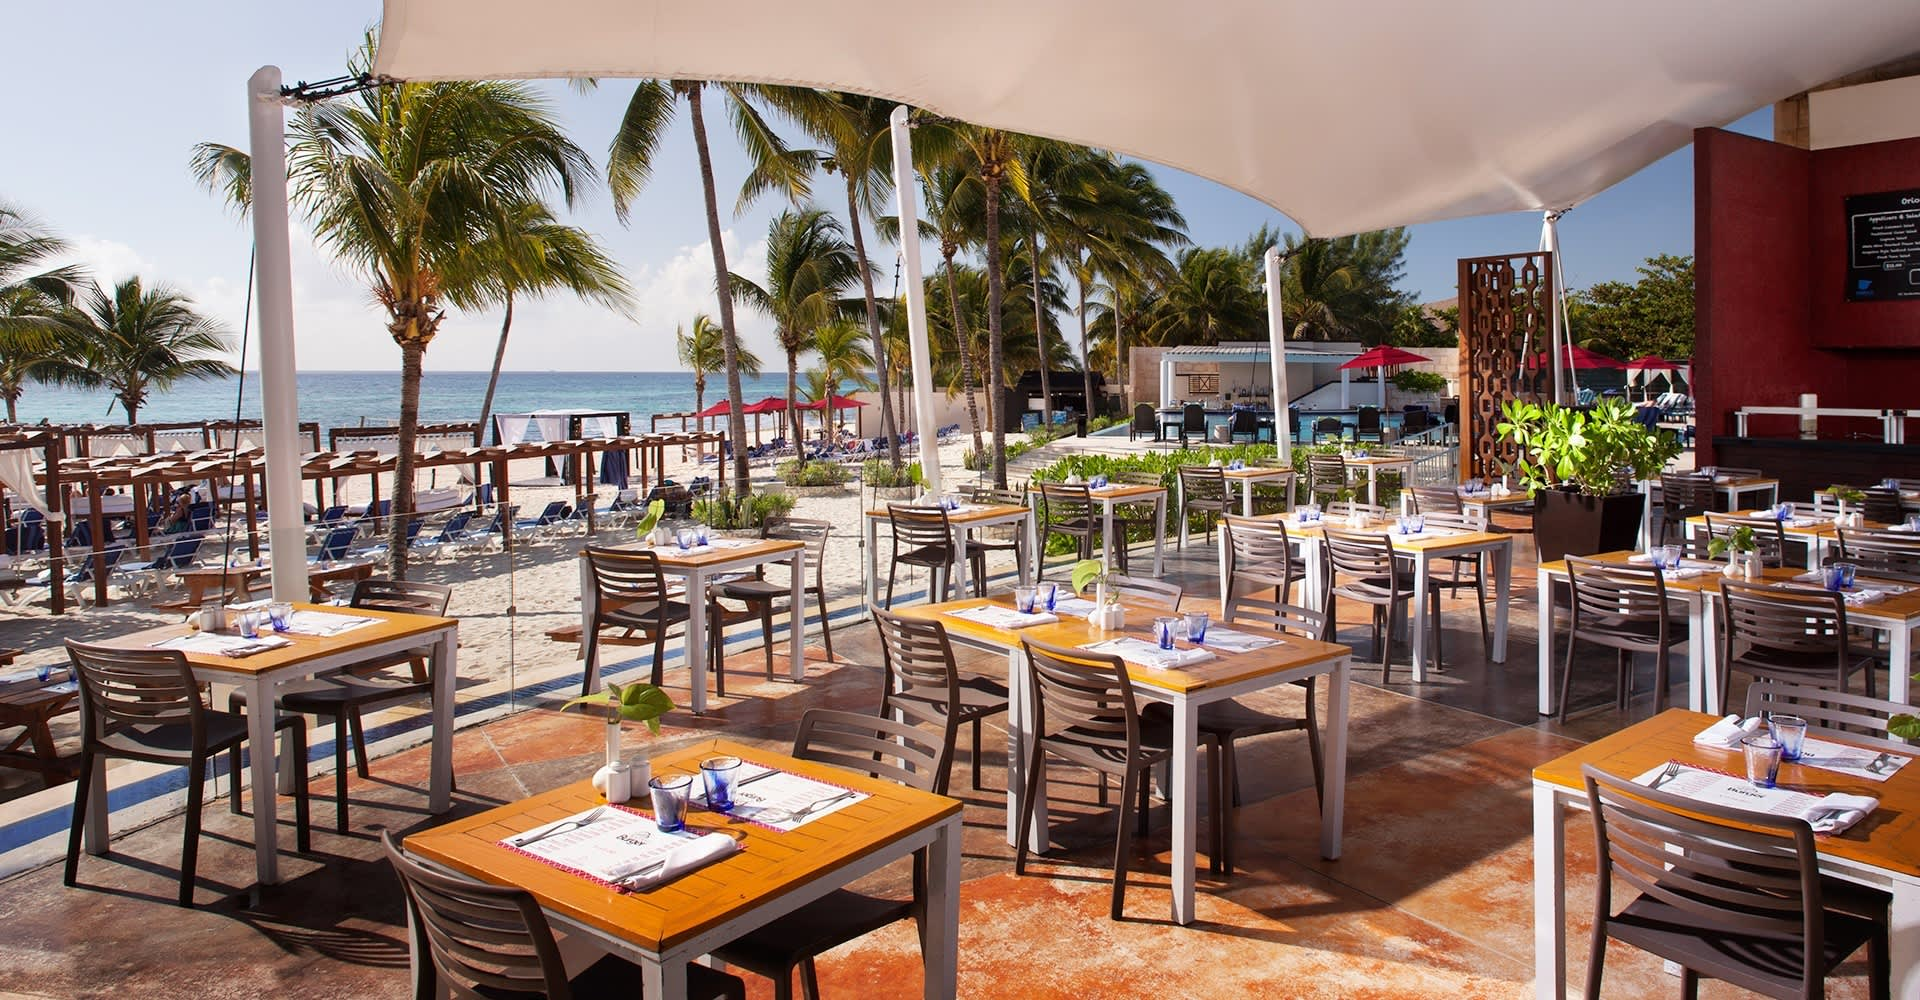 Dining Facilities in Mexico Hotels